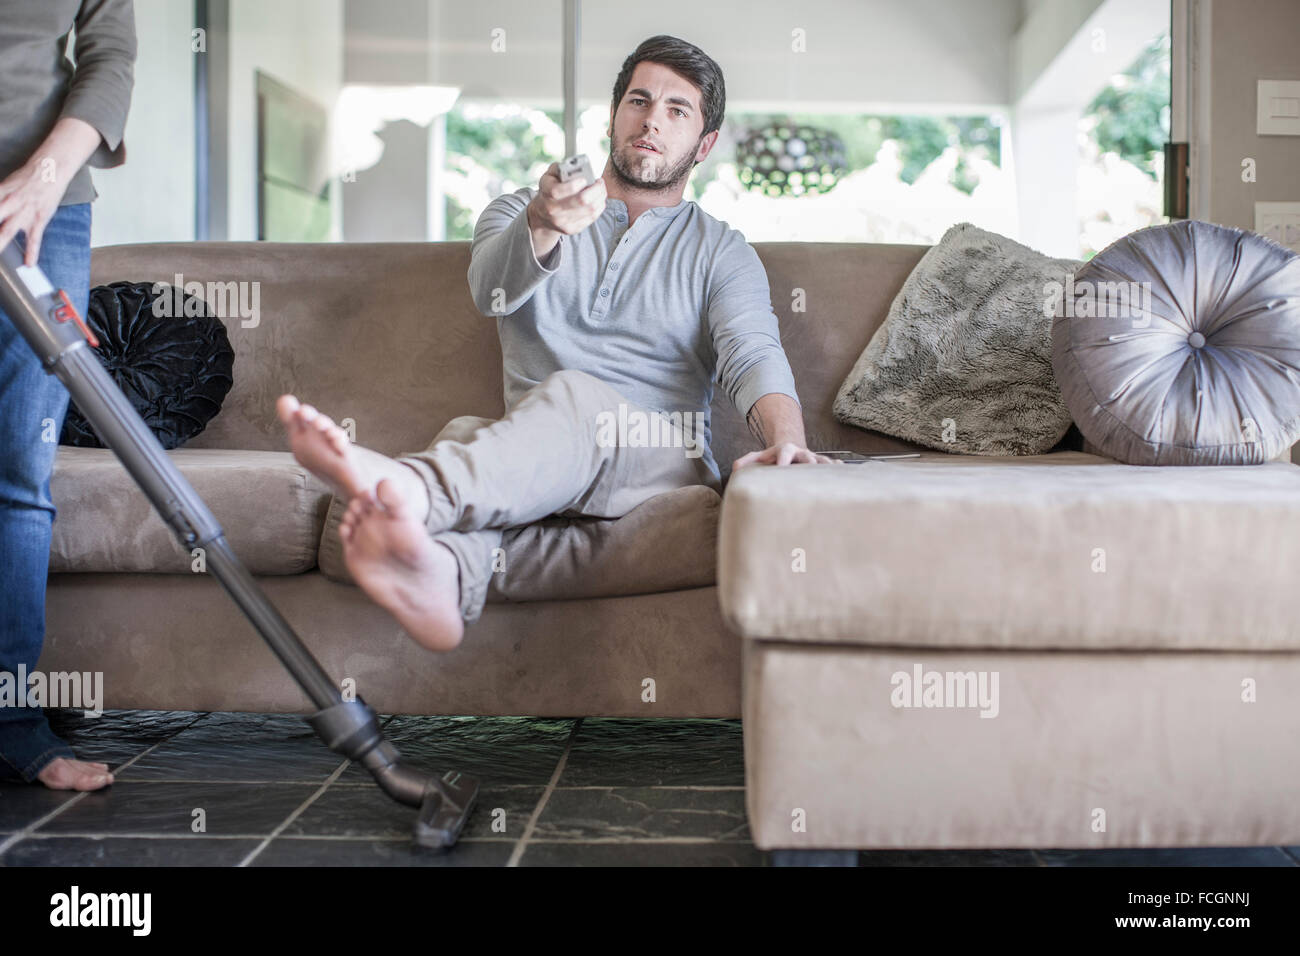 Woman Vacuum Cleaner And Man On Couch Tv Remote